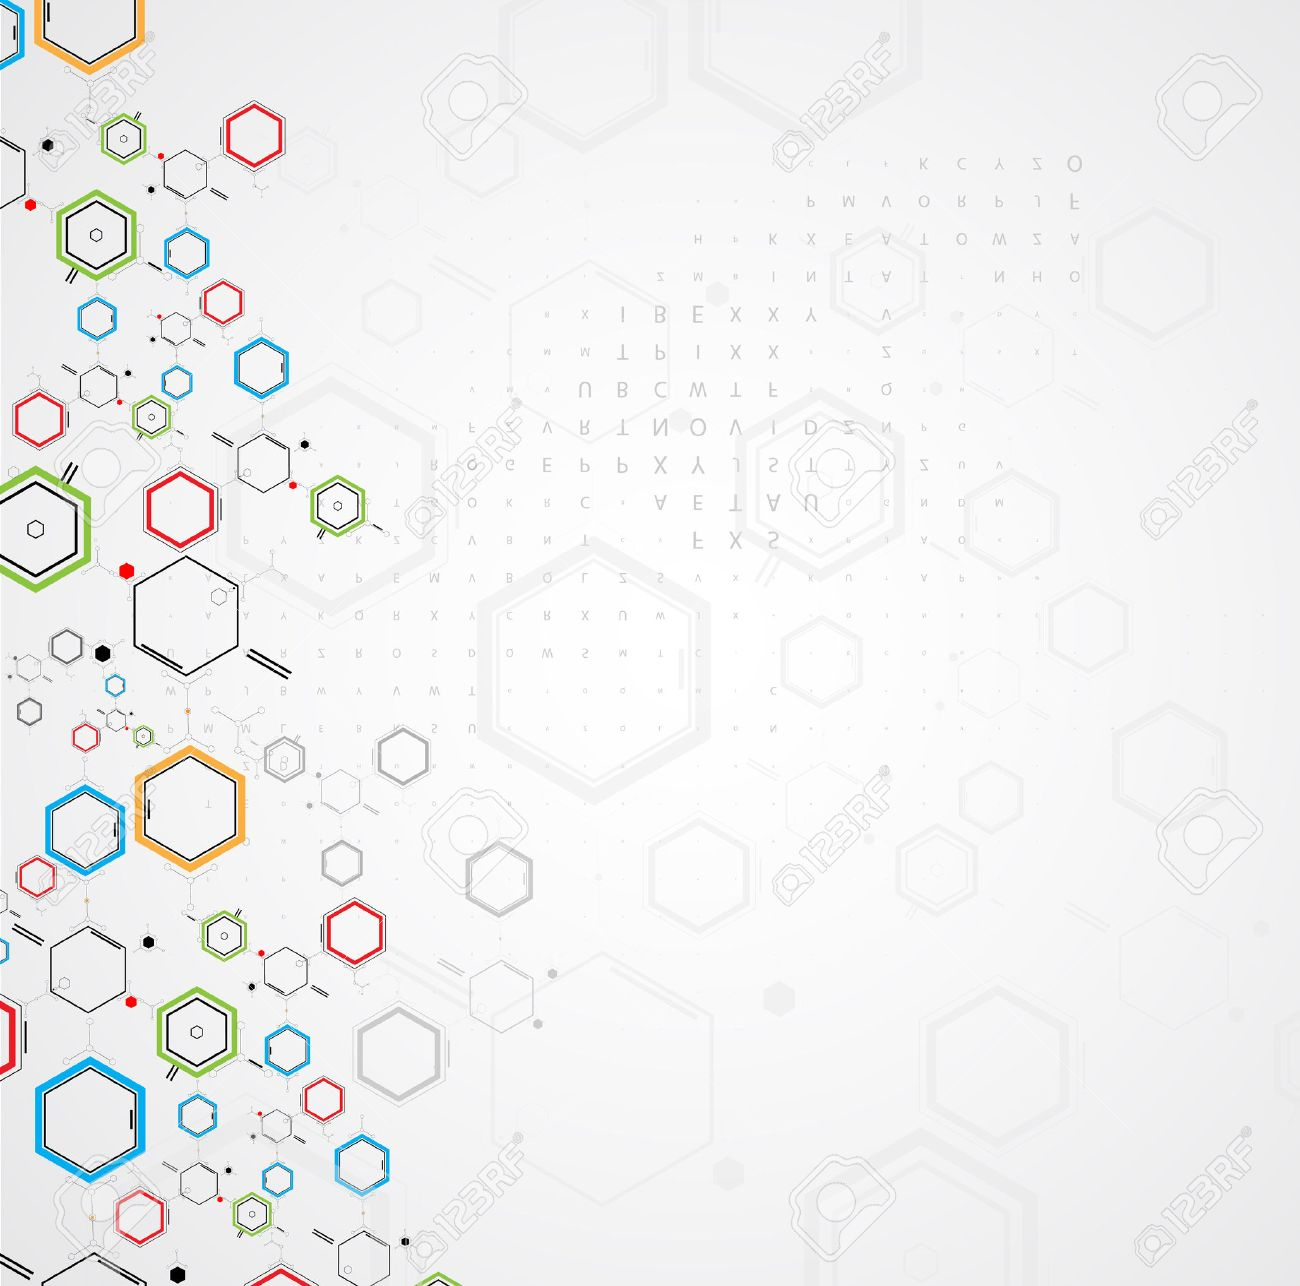 abstract chemical formula technology business science background - 25299188